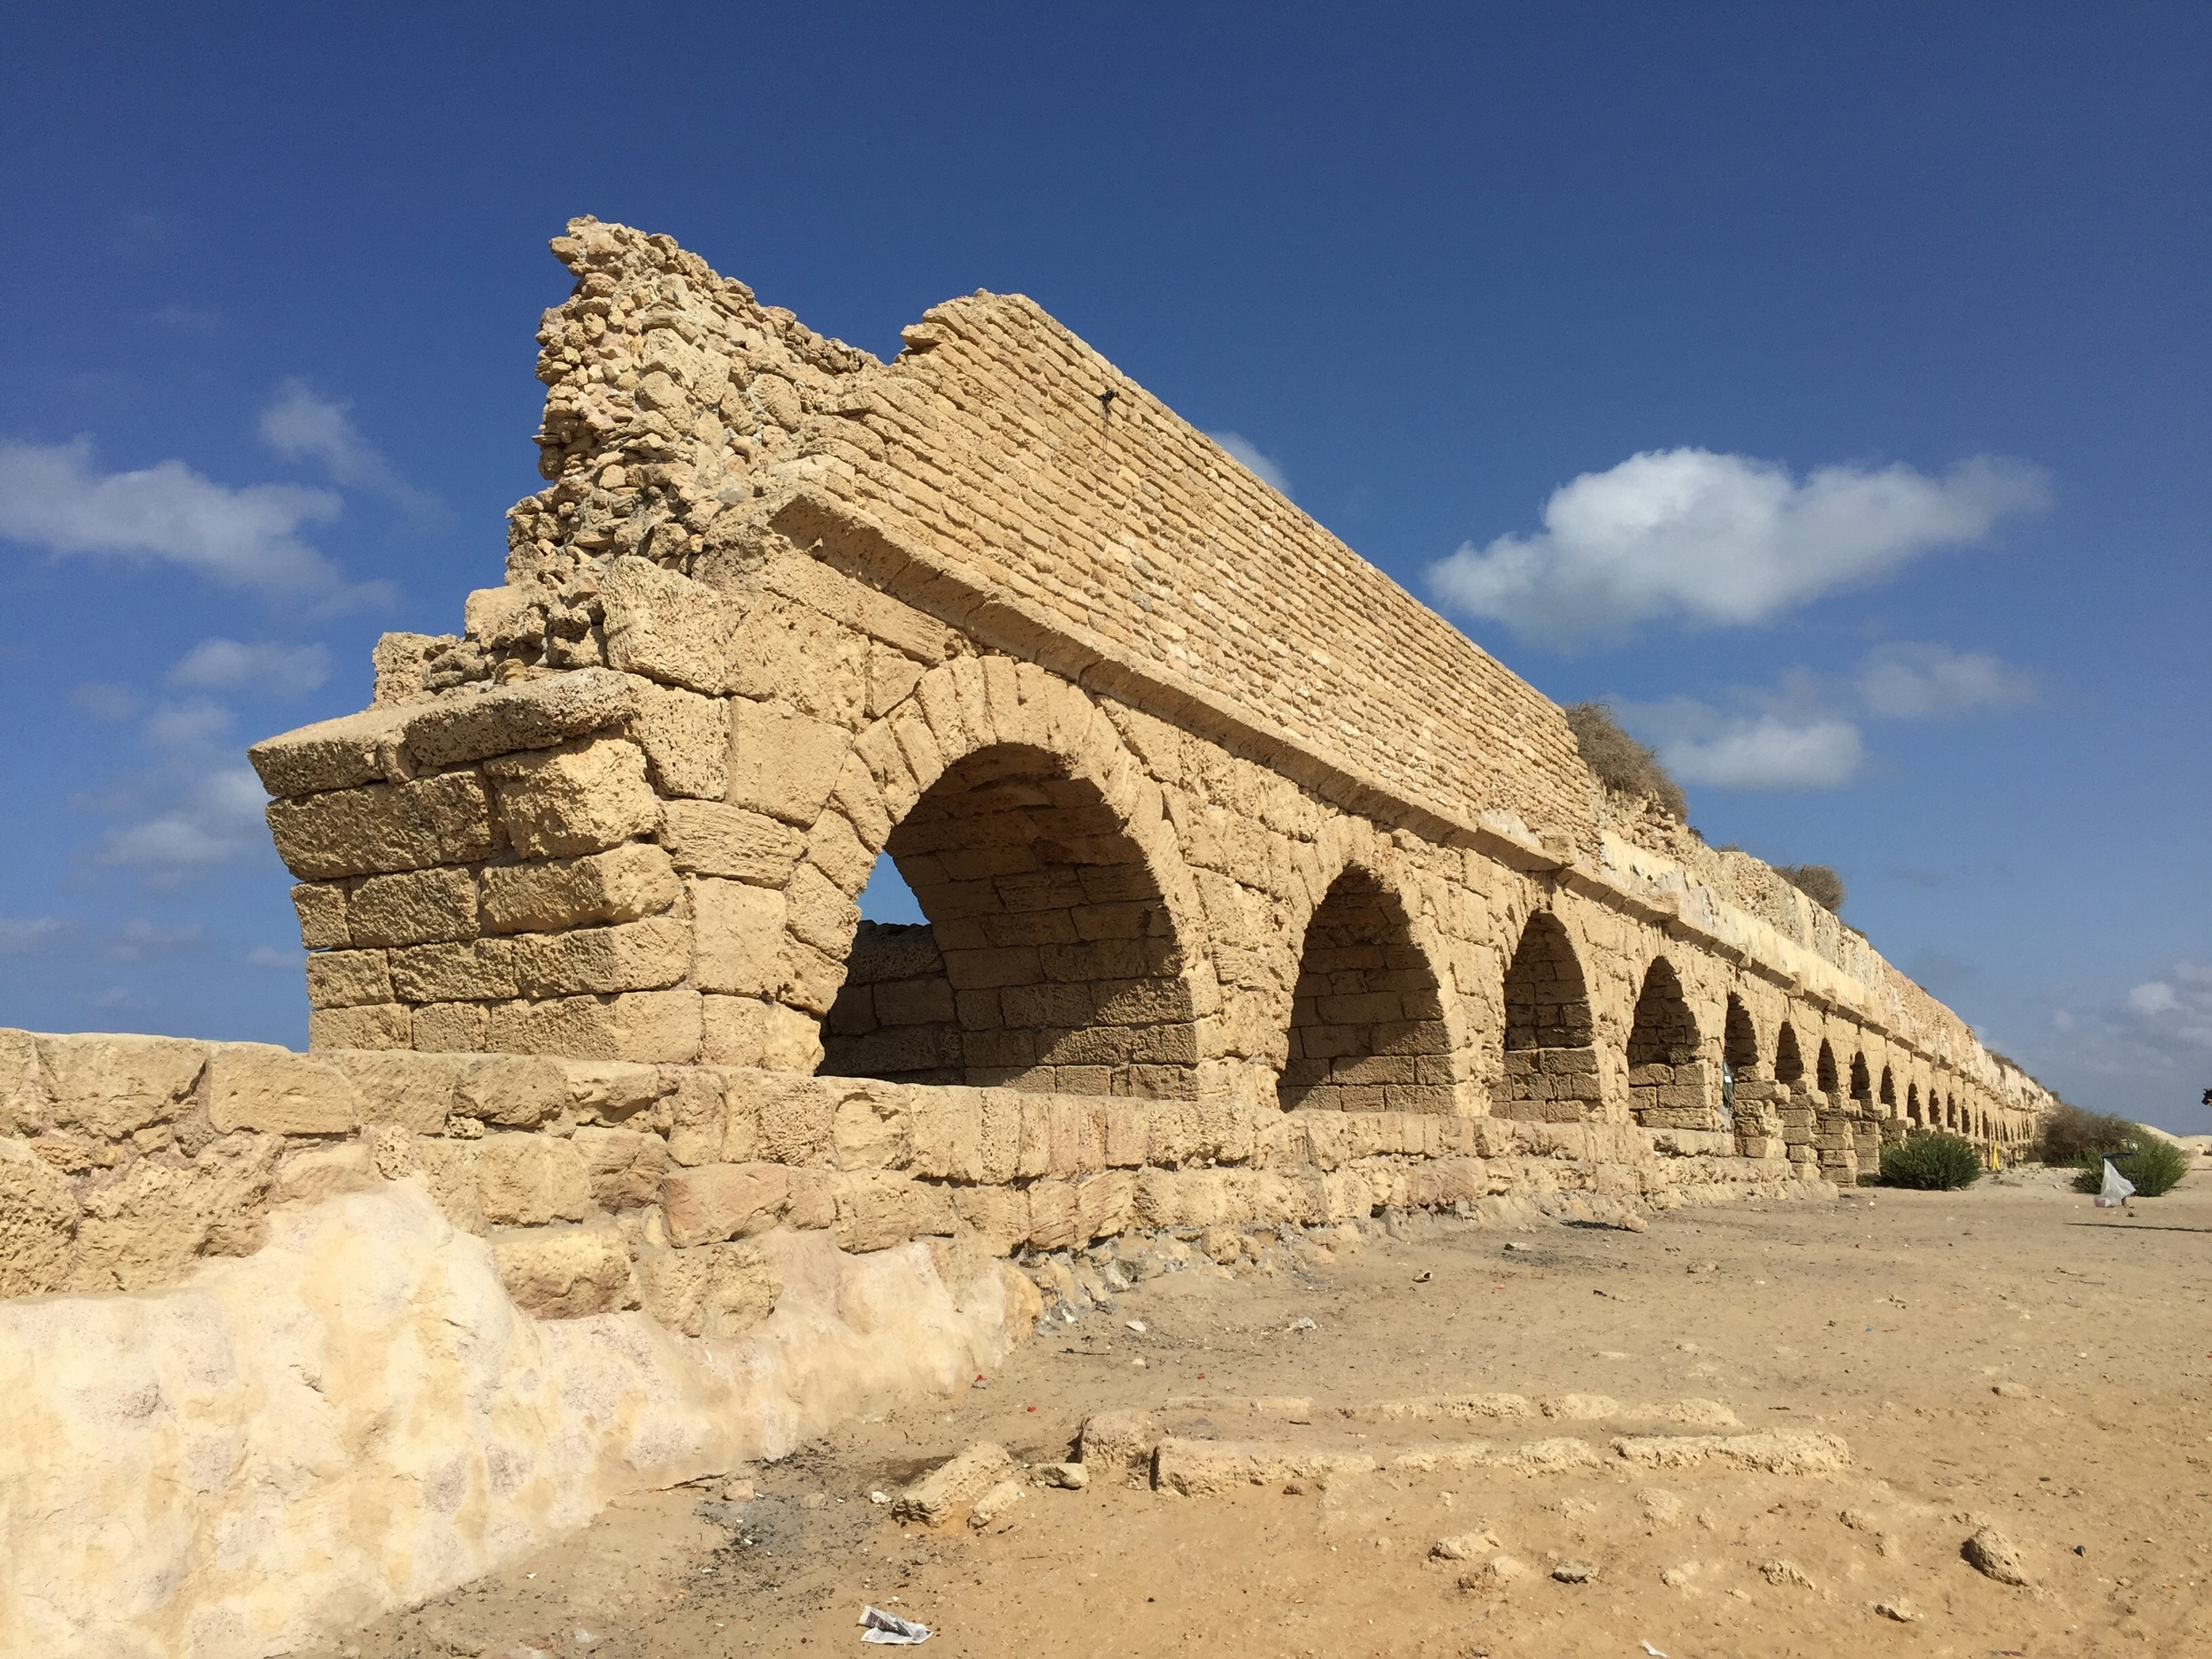 A portion of the aqueduct built by Herod the Great.